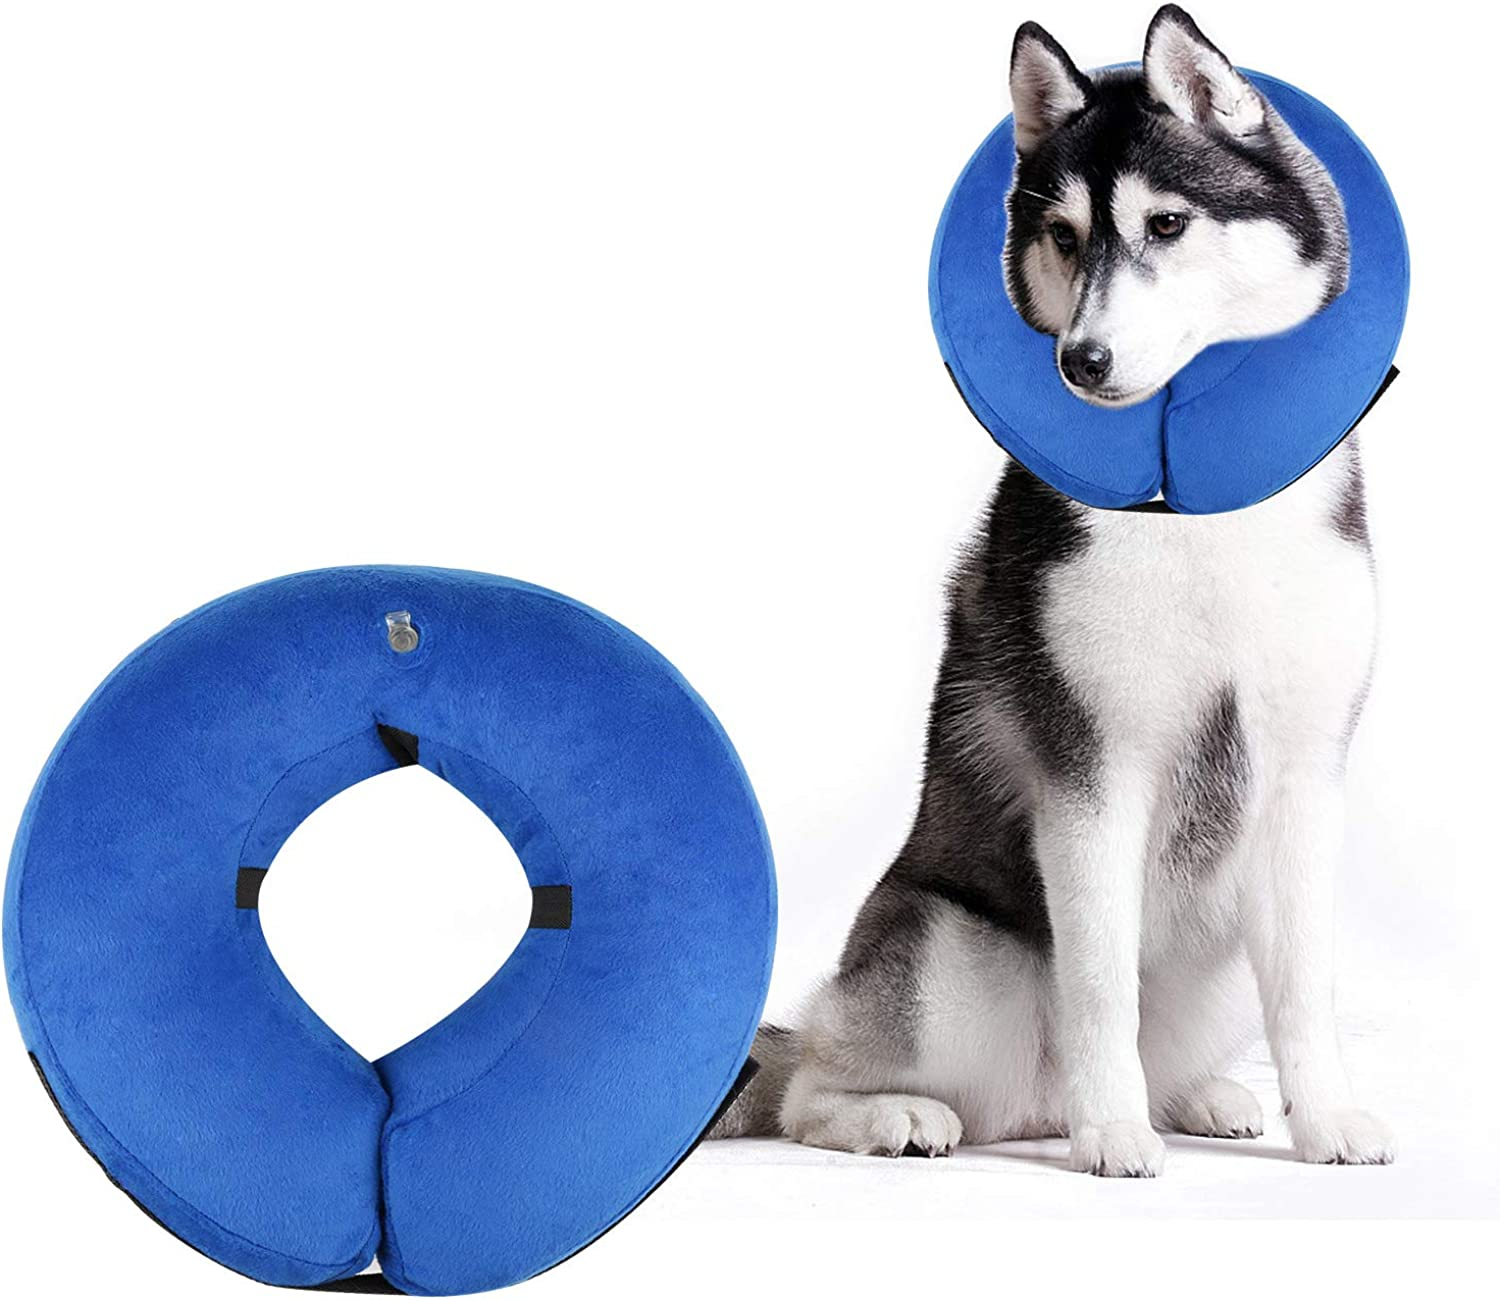 AOFU Dog Cone Collar Soft  Inflatable Dog Collars for After Surgery  Adjustable Predective Inflatable Dog Collar for Small Medium Large Dogs  Large(bluee)